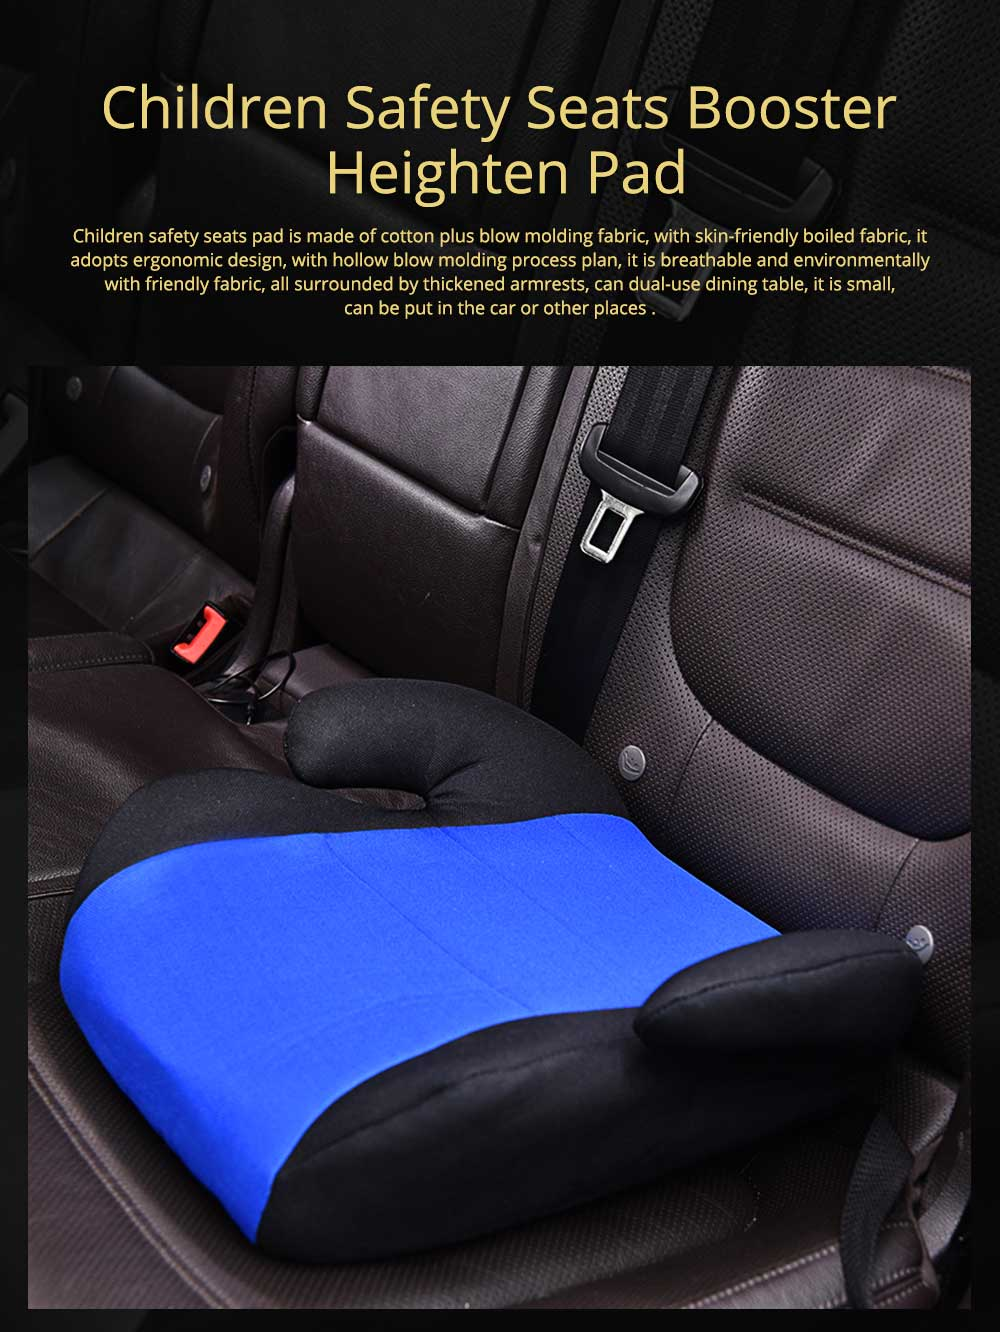 Infant Car Safety Seats Booster Children Heighten Pad for 3-12 Years Kids Safety Products Suit With ECE Certificate 0